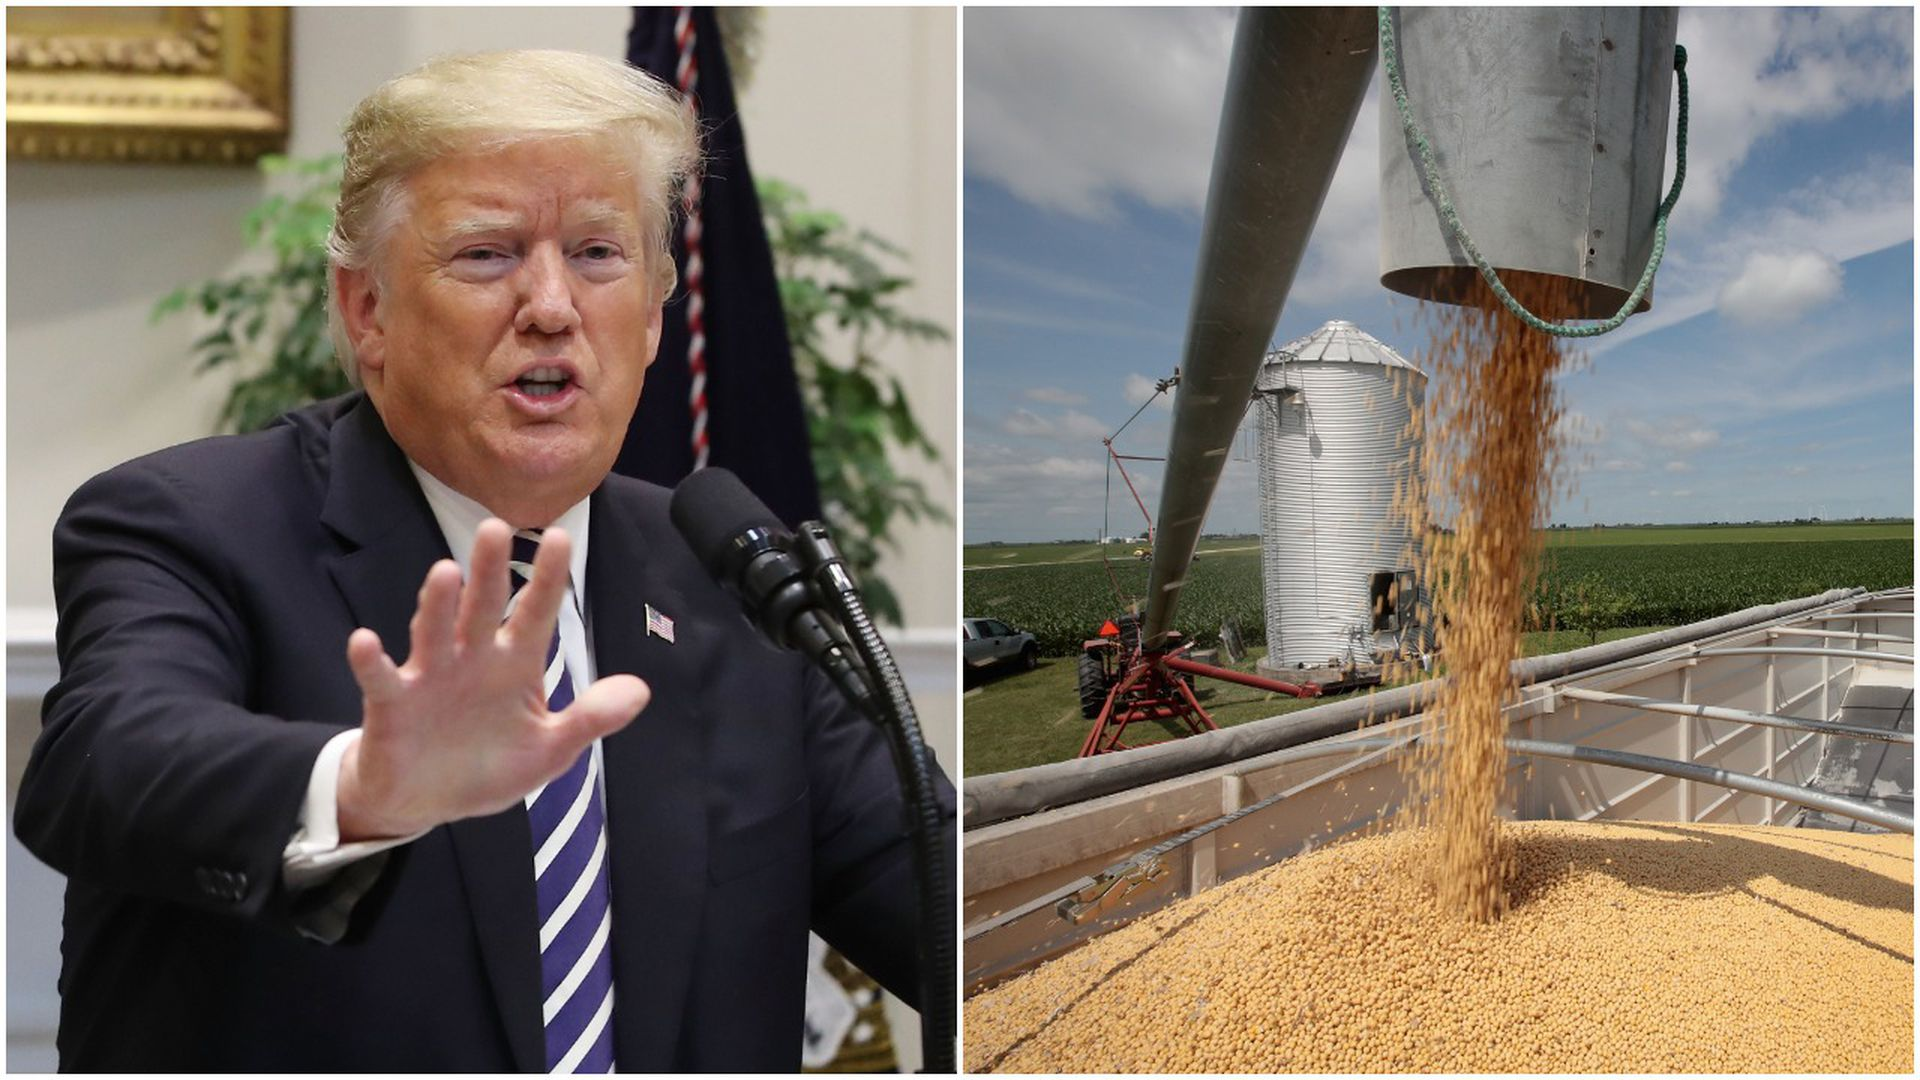 Trump and soybeans